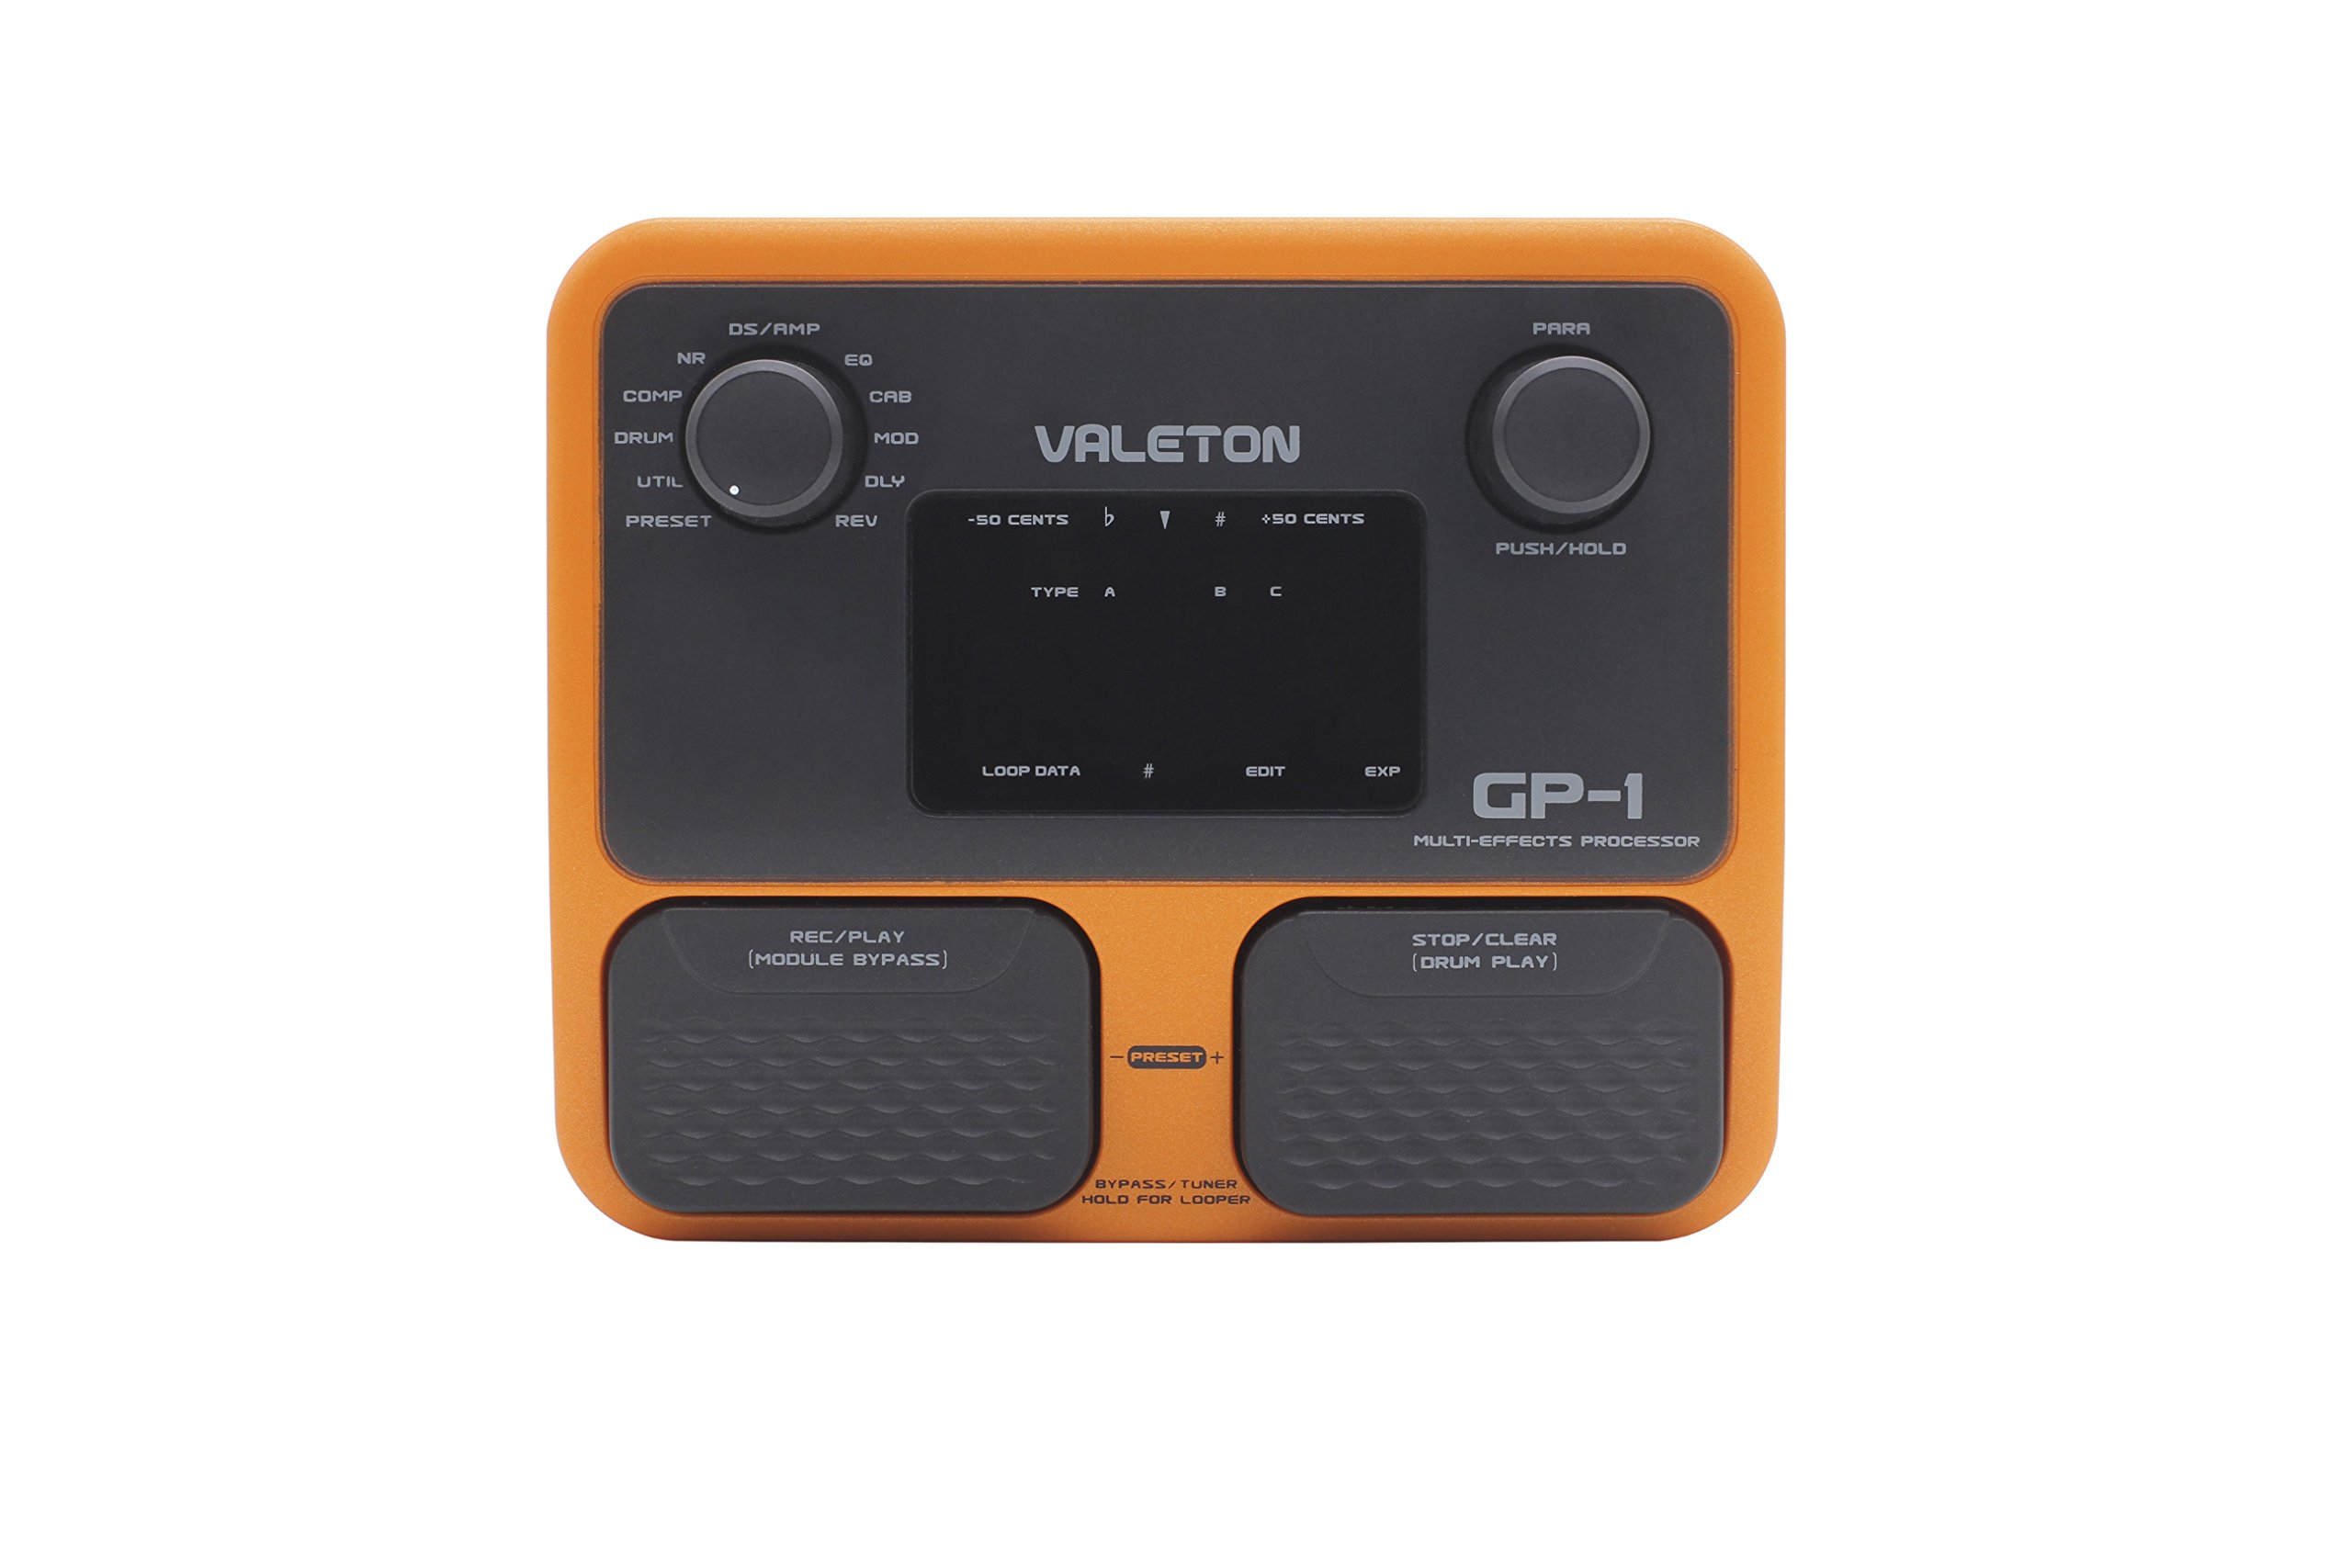 Valeton GP-1 Multi Effects Processor Combines Drum Machine and Looper Complete Feature Set